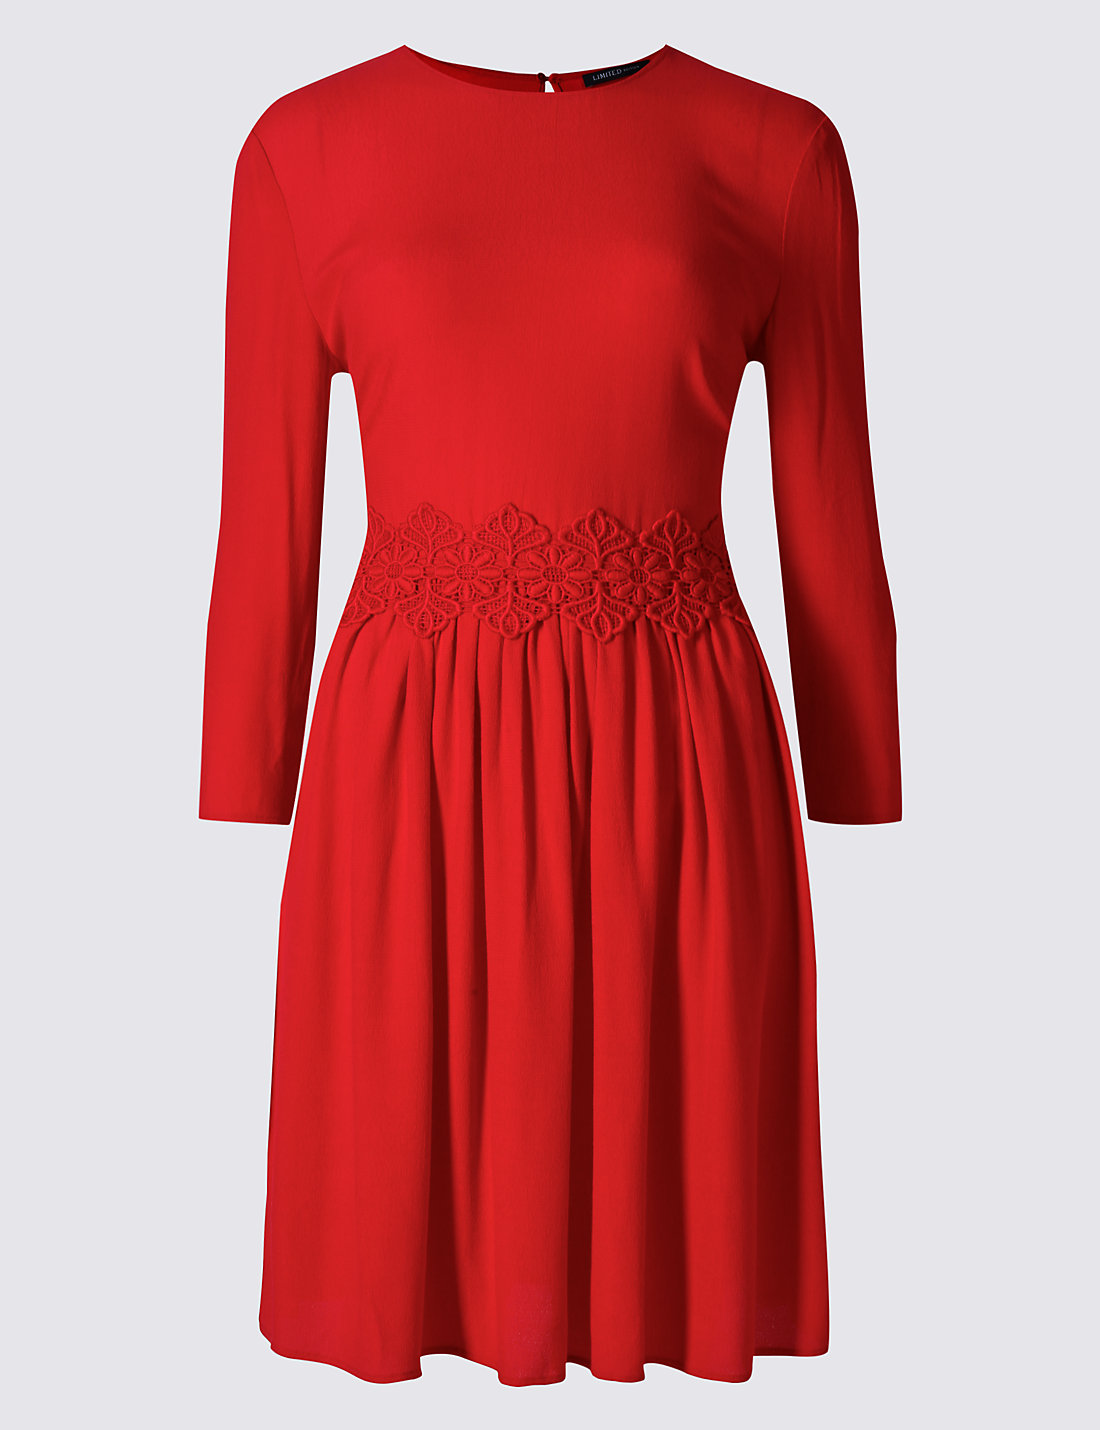 LIMITED EDITION New Crochet Smoke Lined 3/4 Sleeve Swing Dress £39.50 Click to visit M&S